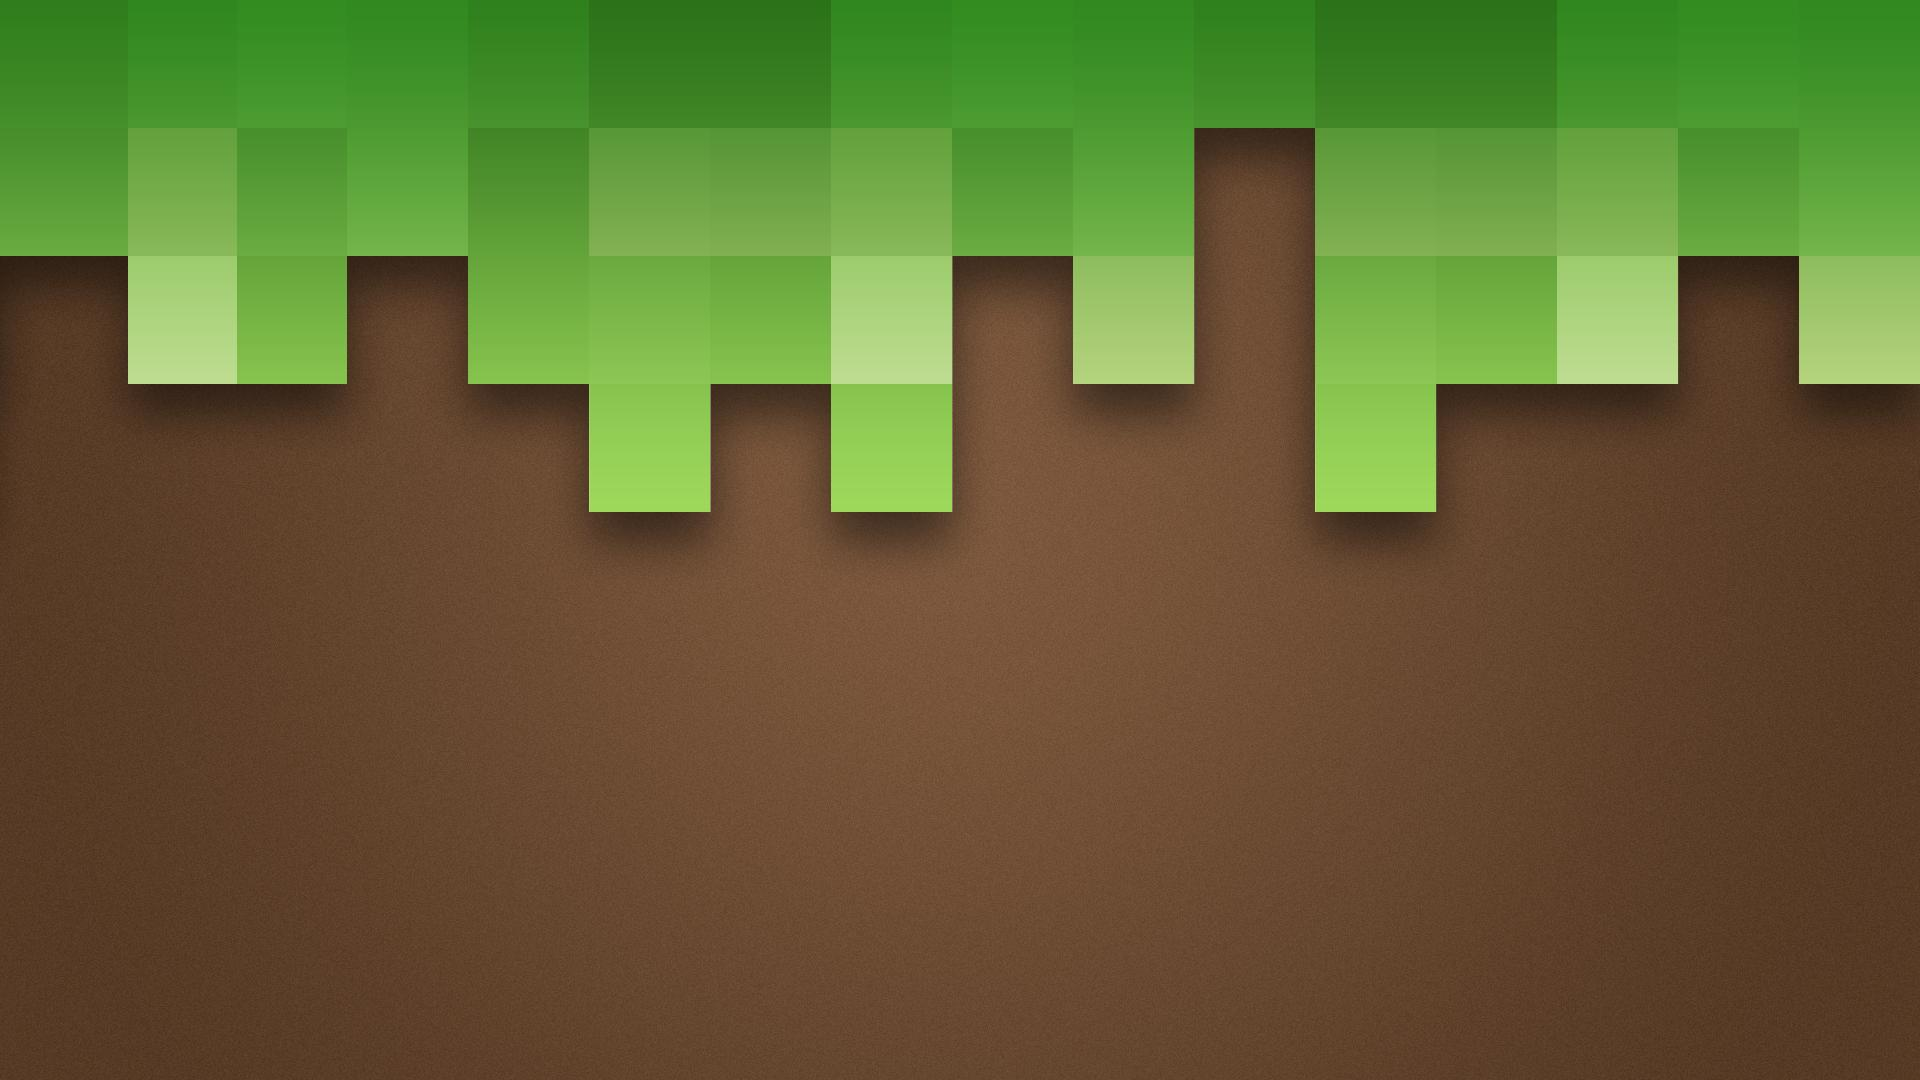 minecraft wallpaper 1920x1200 original - photo #32